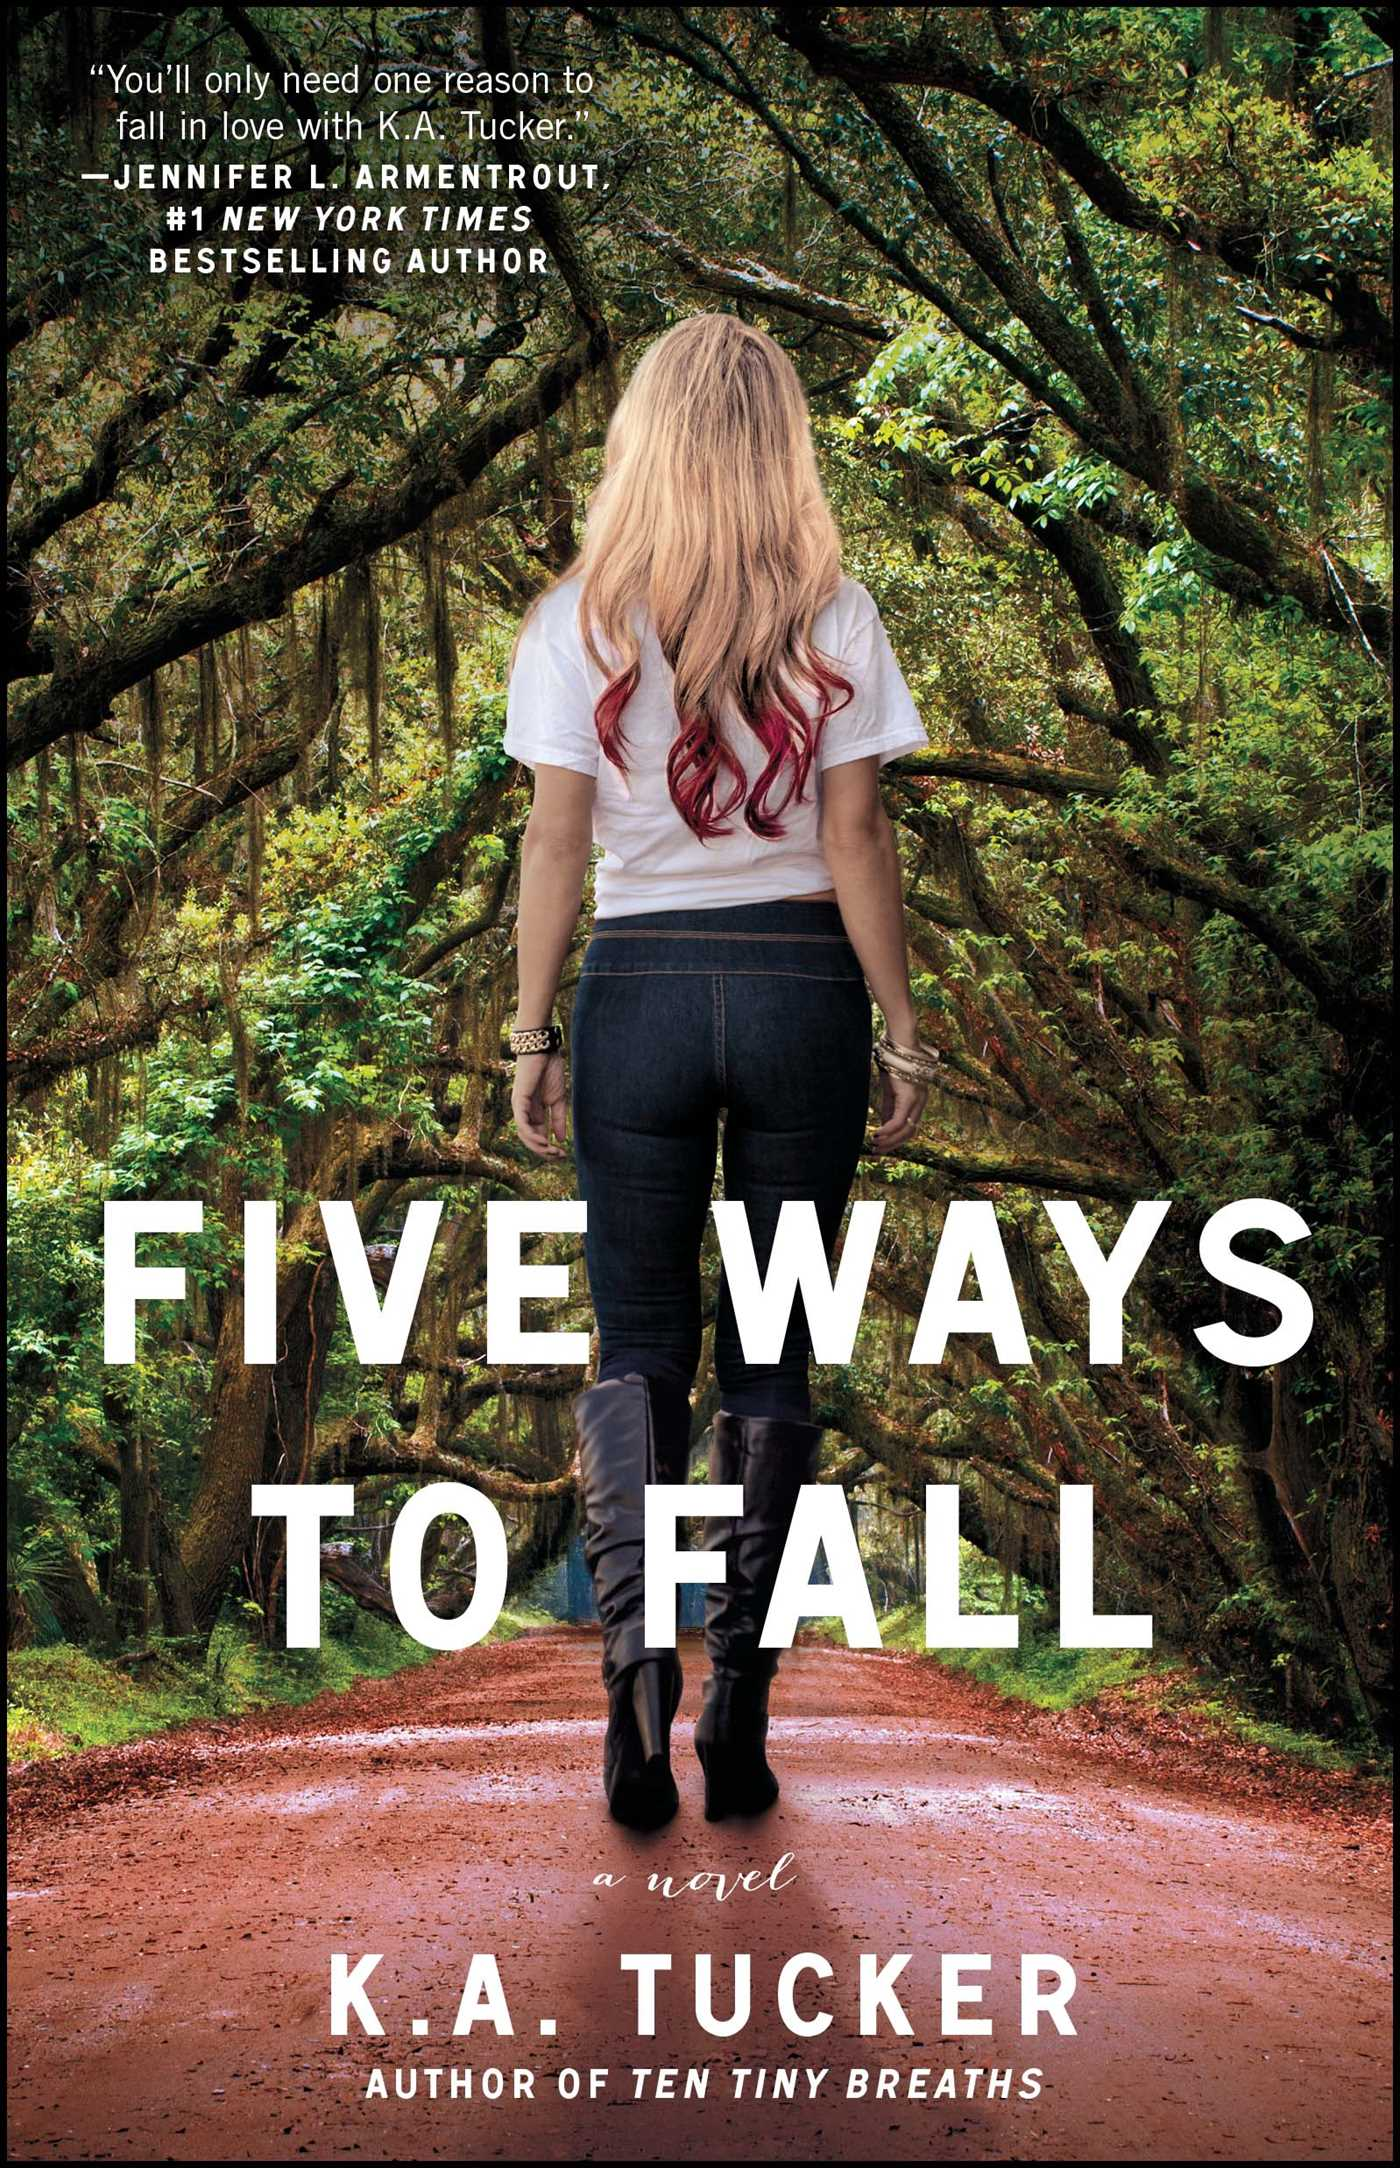 Five ways to fall 9781476740522 hr